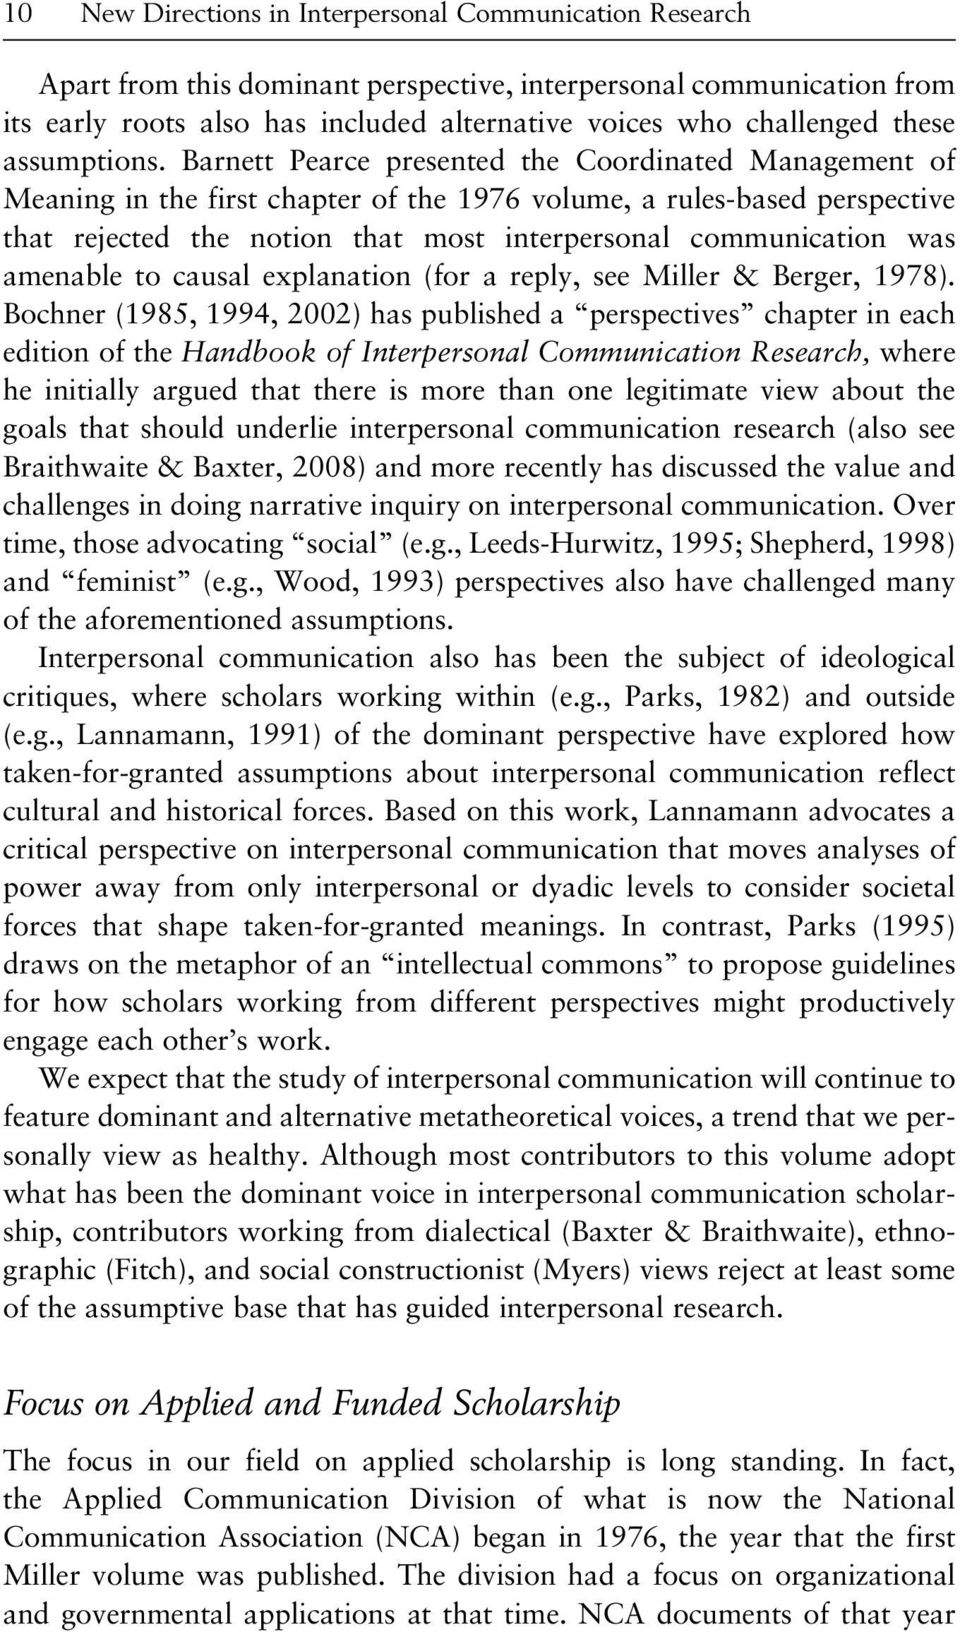 Barnett Pearce presented the Coordinated Management of Meaning in the first chapter of the 1976 volume, a rules-based perspective that rejected the notion that most interpersonal communication was